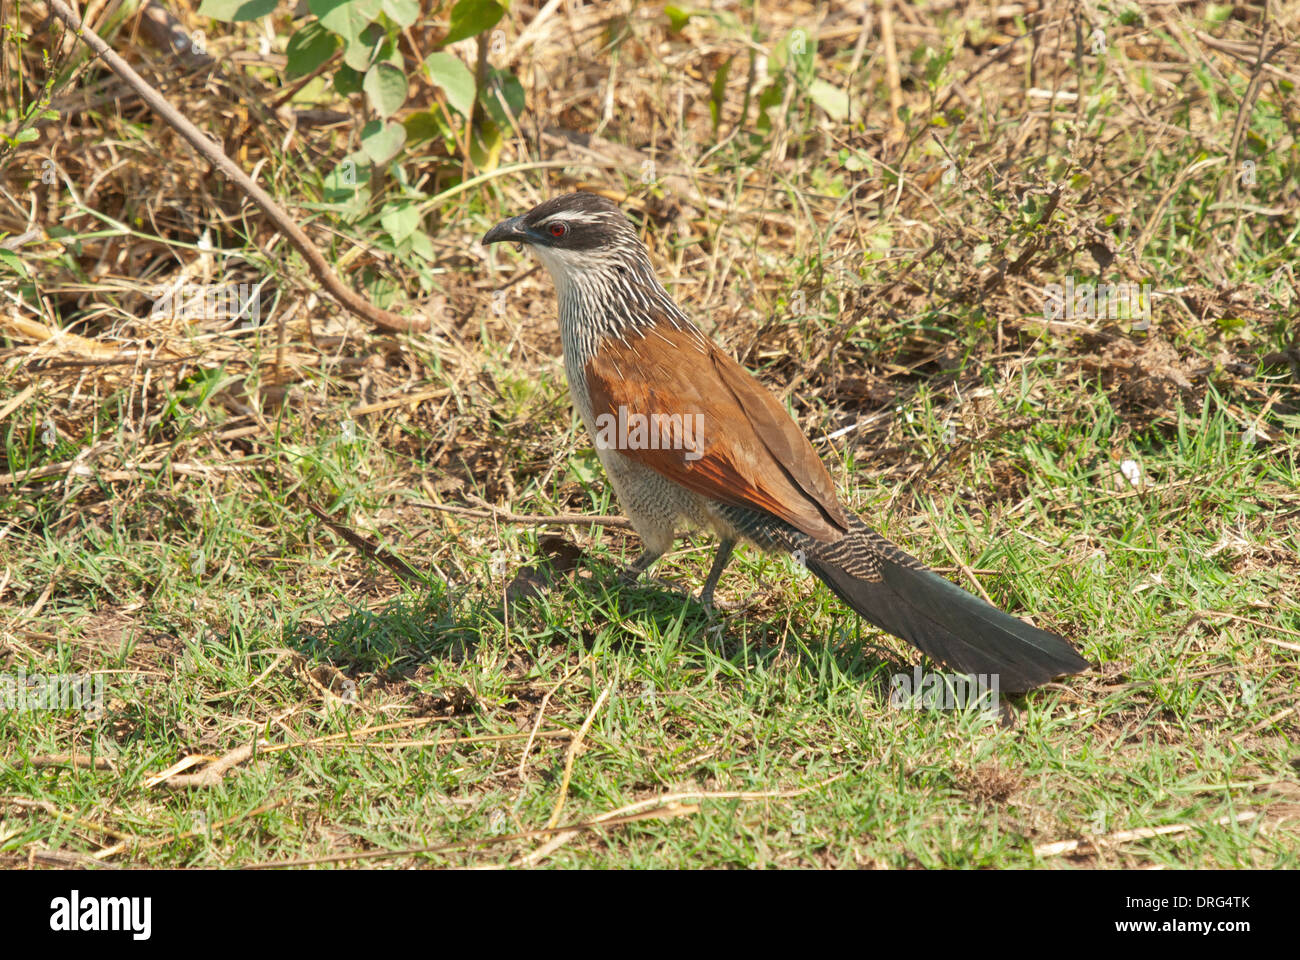 White-browed coucal (Centropus superciliosus) foraging on the ground - Stock Image